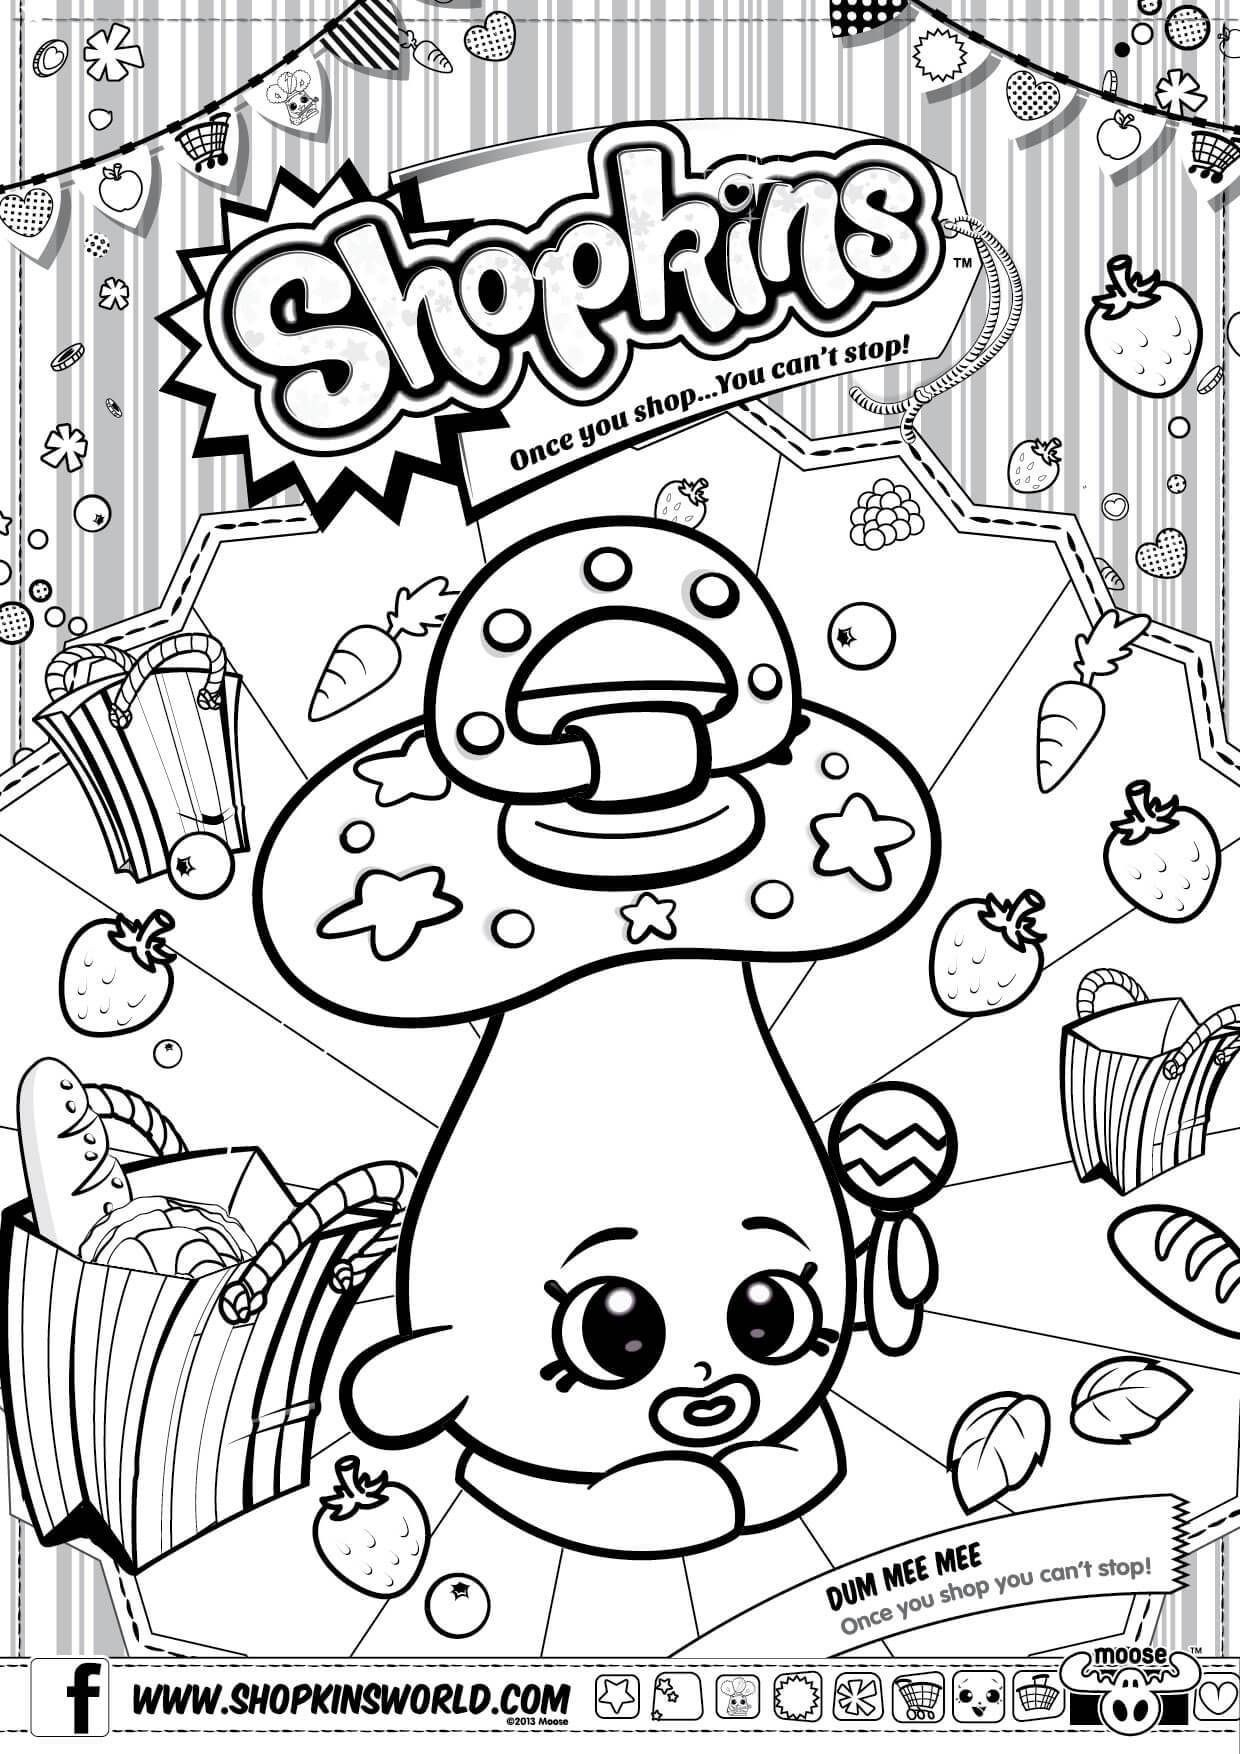 photograph regarding Free Printable Shopkins Coloring Pages identified as Absolutely free Printable Shopkins Coloring Web pages at